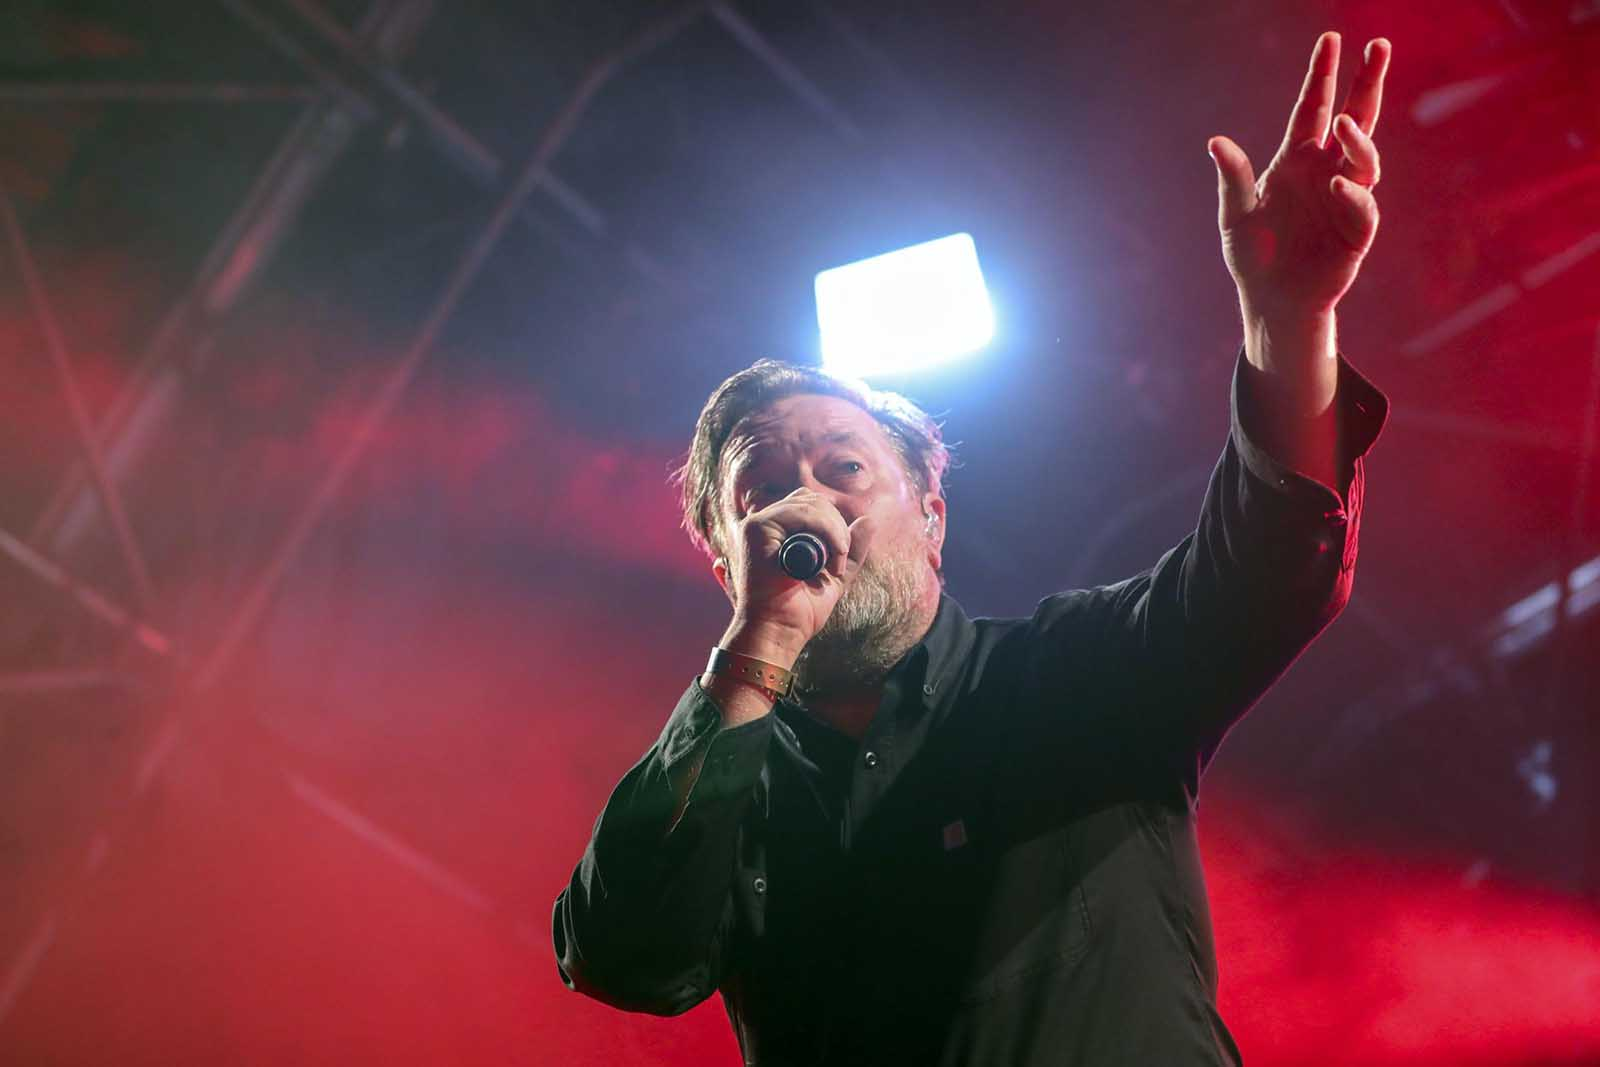 Guy Garvey of Elbow believes streaming music as it is today will kill the industry. But governments and music lovers can save it if they try.